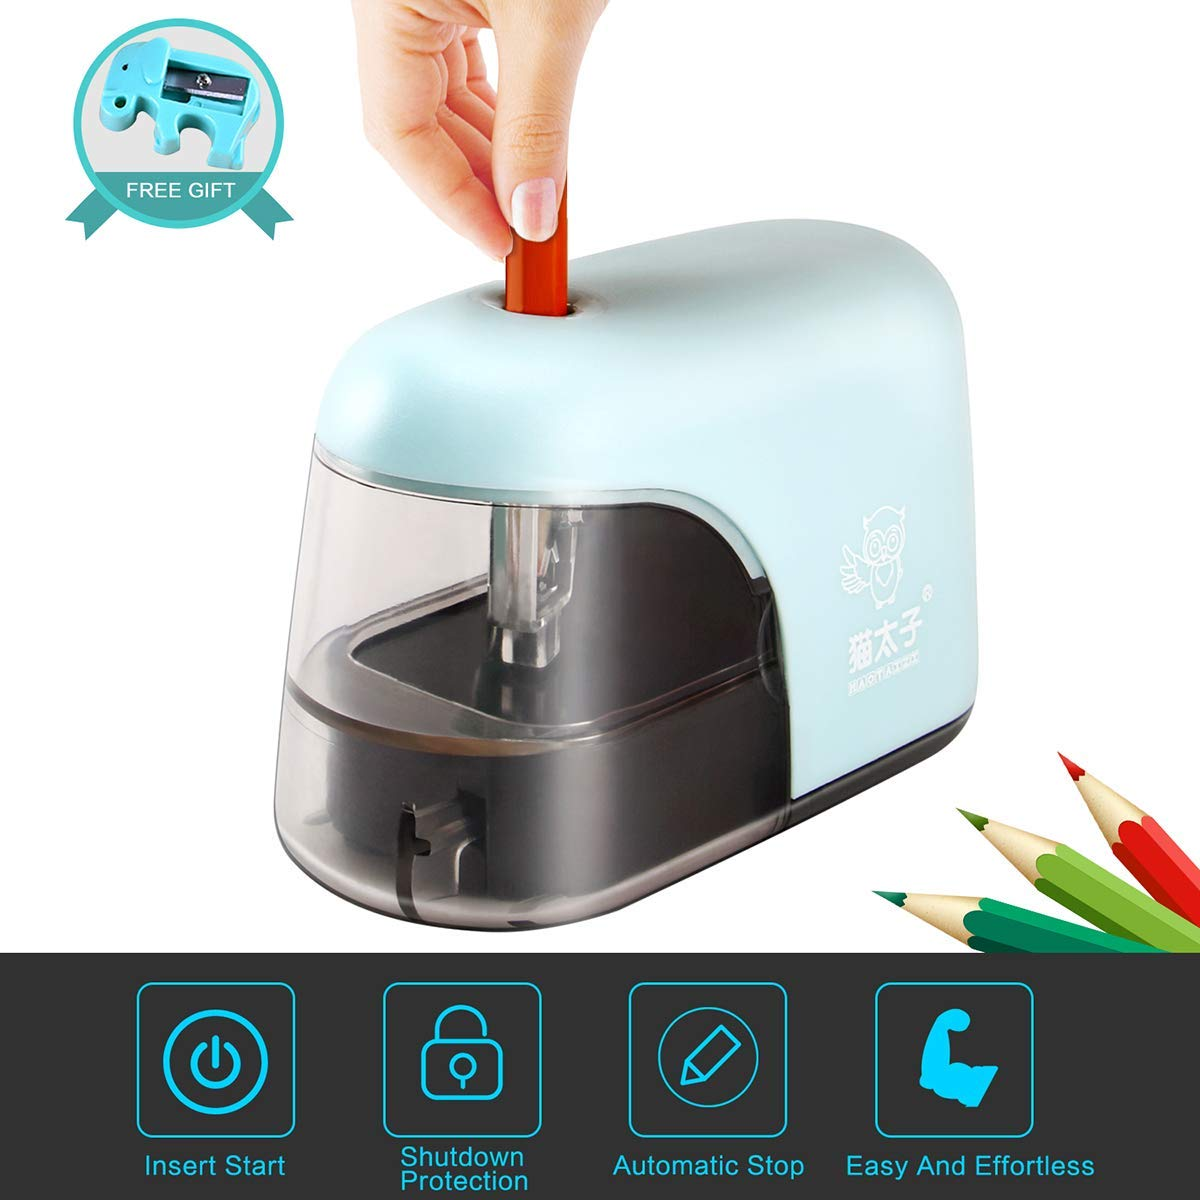 Electric Pencil Sharpener, Auto-Stop Safty Feature Electric Pencil Sharpener, Cute Mini Electric Pencil Sharpener Electric Pencil Sharpener For Kids. Mini Cute Electric Pencil Sharpener Small Electric